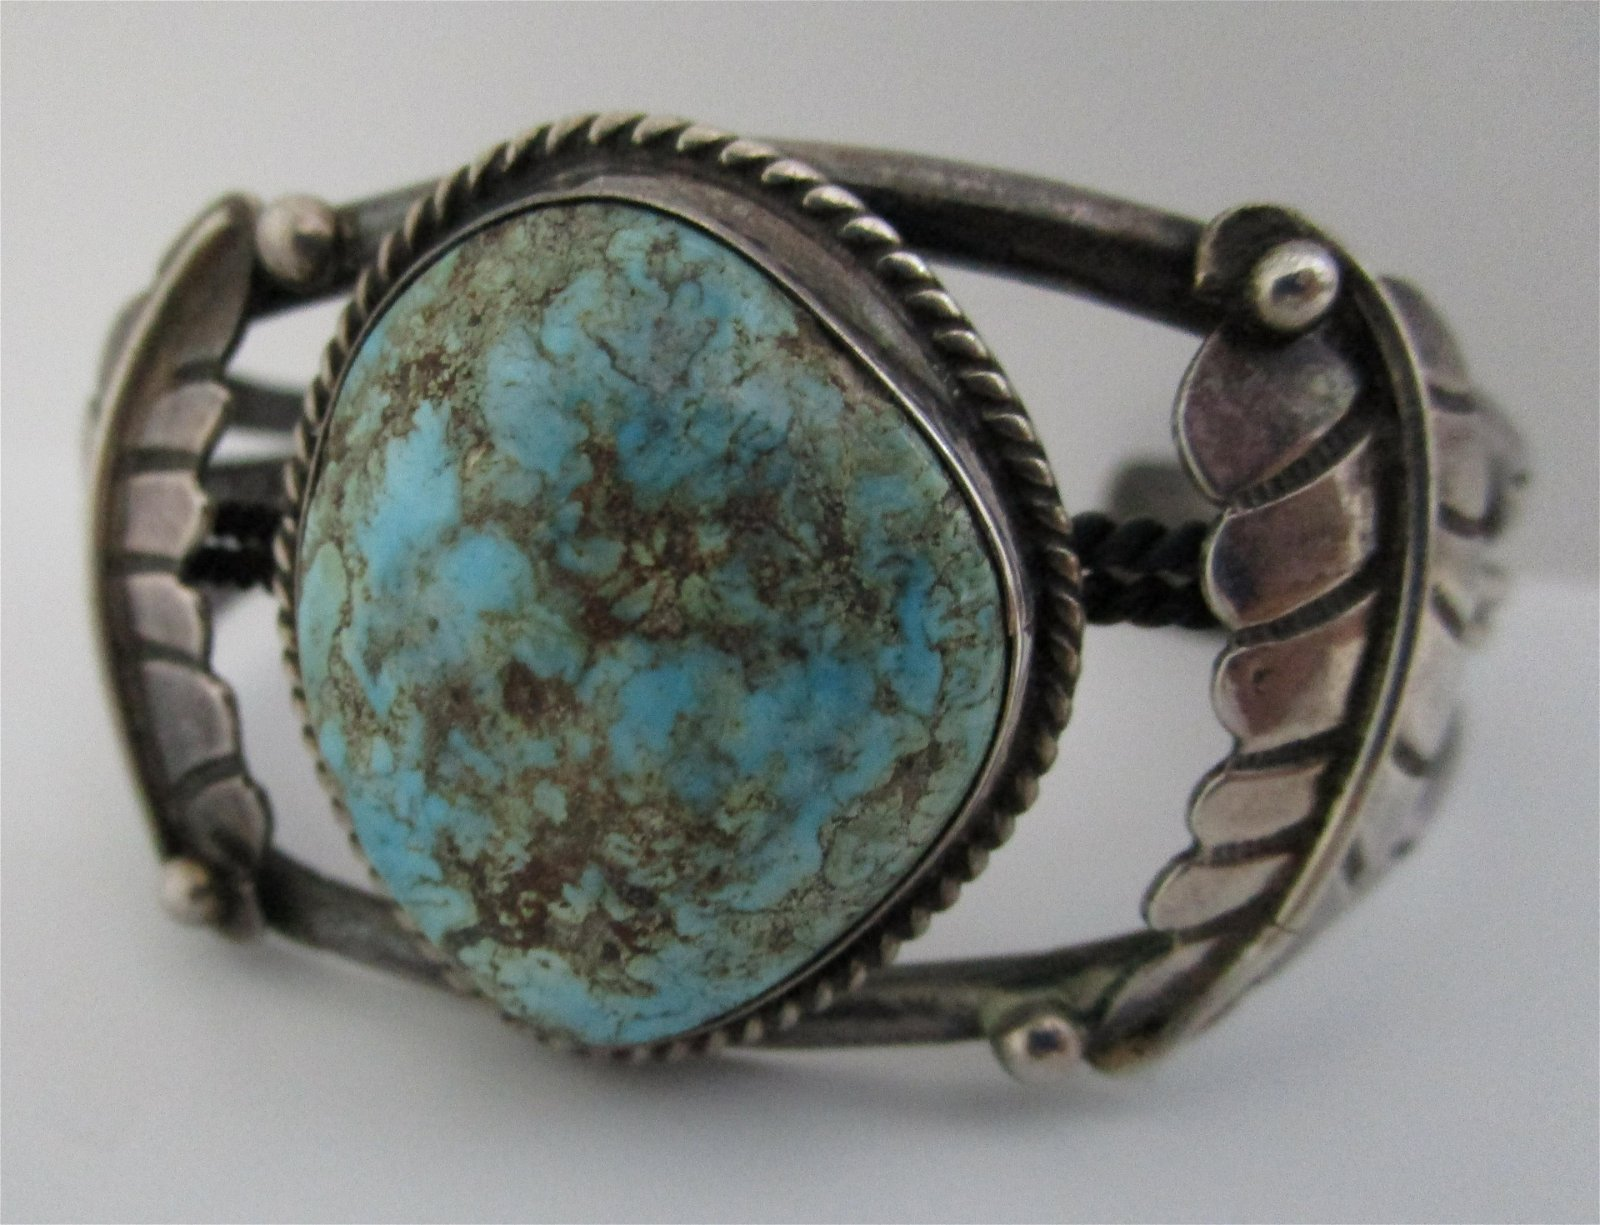 FAB TURQUOISE CUFF BRACELET STERLING SILVER